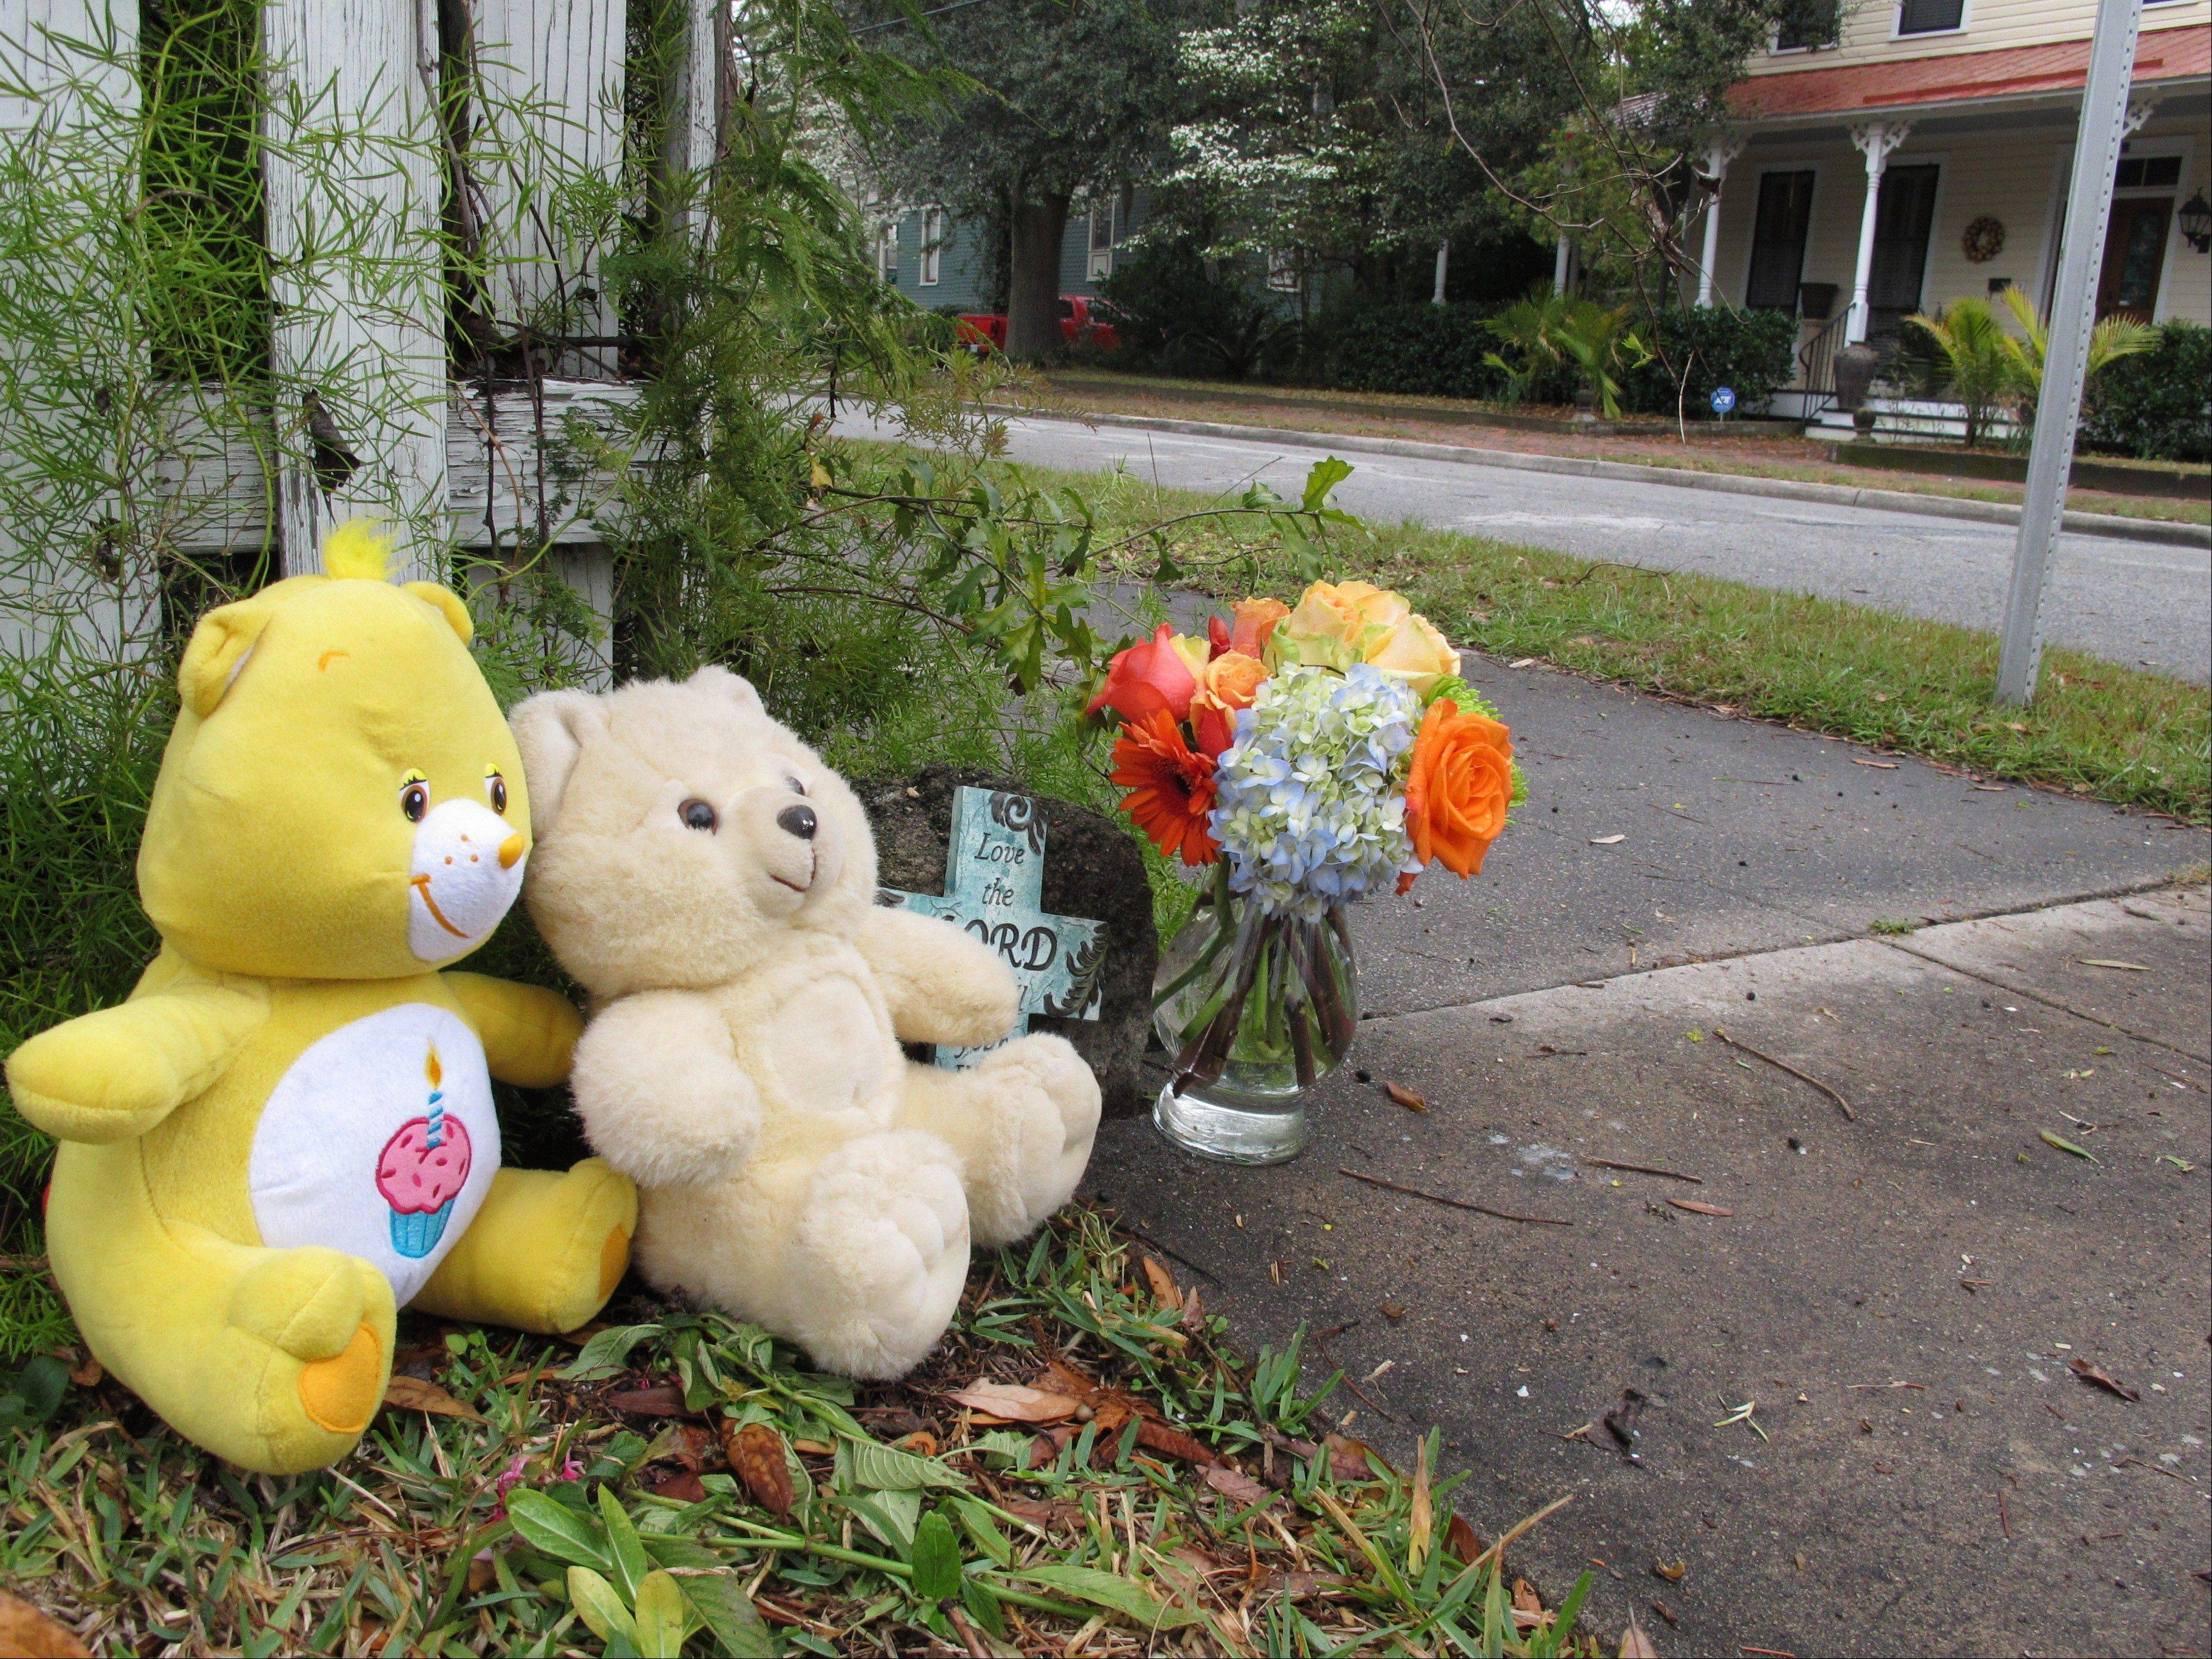 Two teddy bears, a commemorative cross and a vase of flowers sit on a street corner Saturday in Brunswick, Ga., near where a 13-month-old baby was fatally shot.